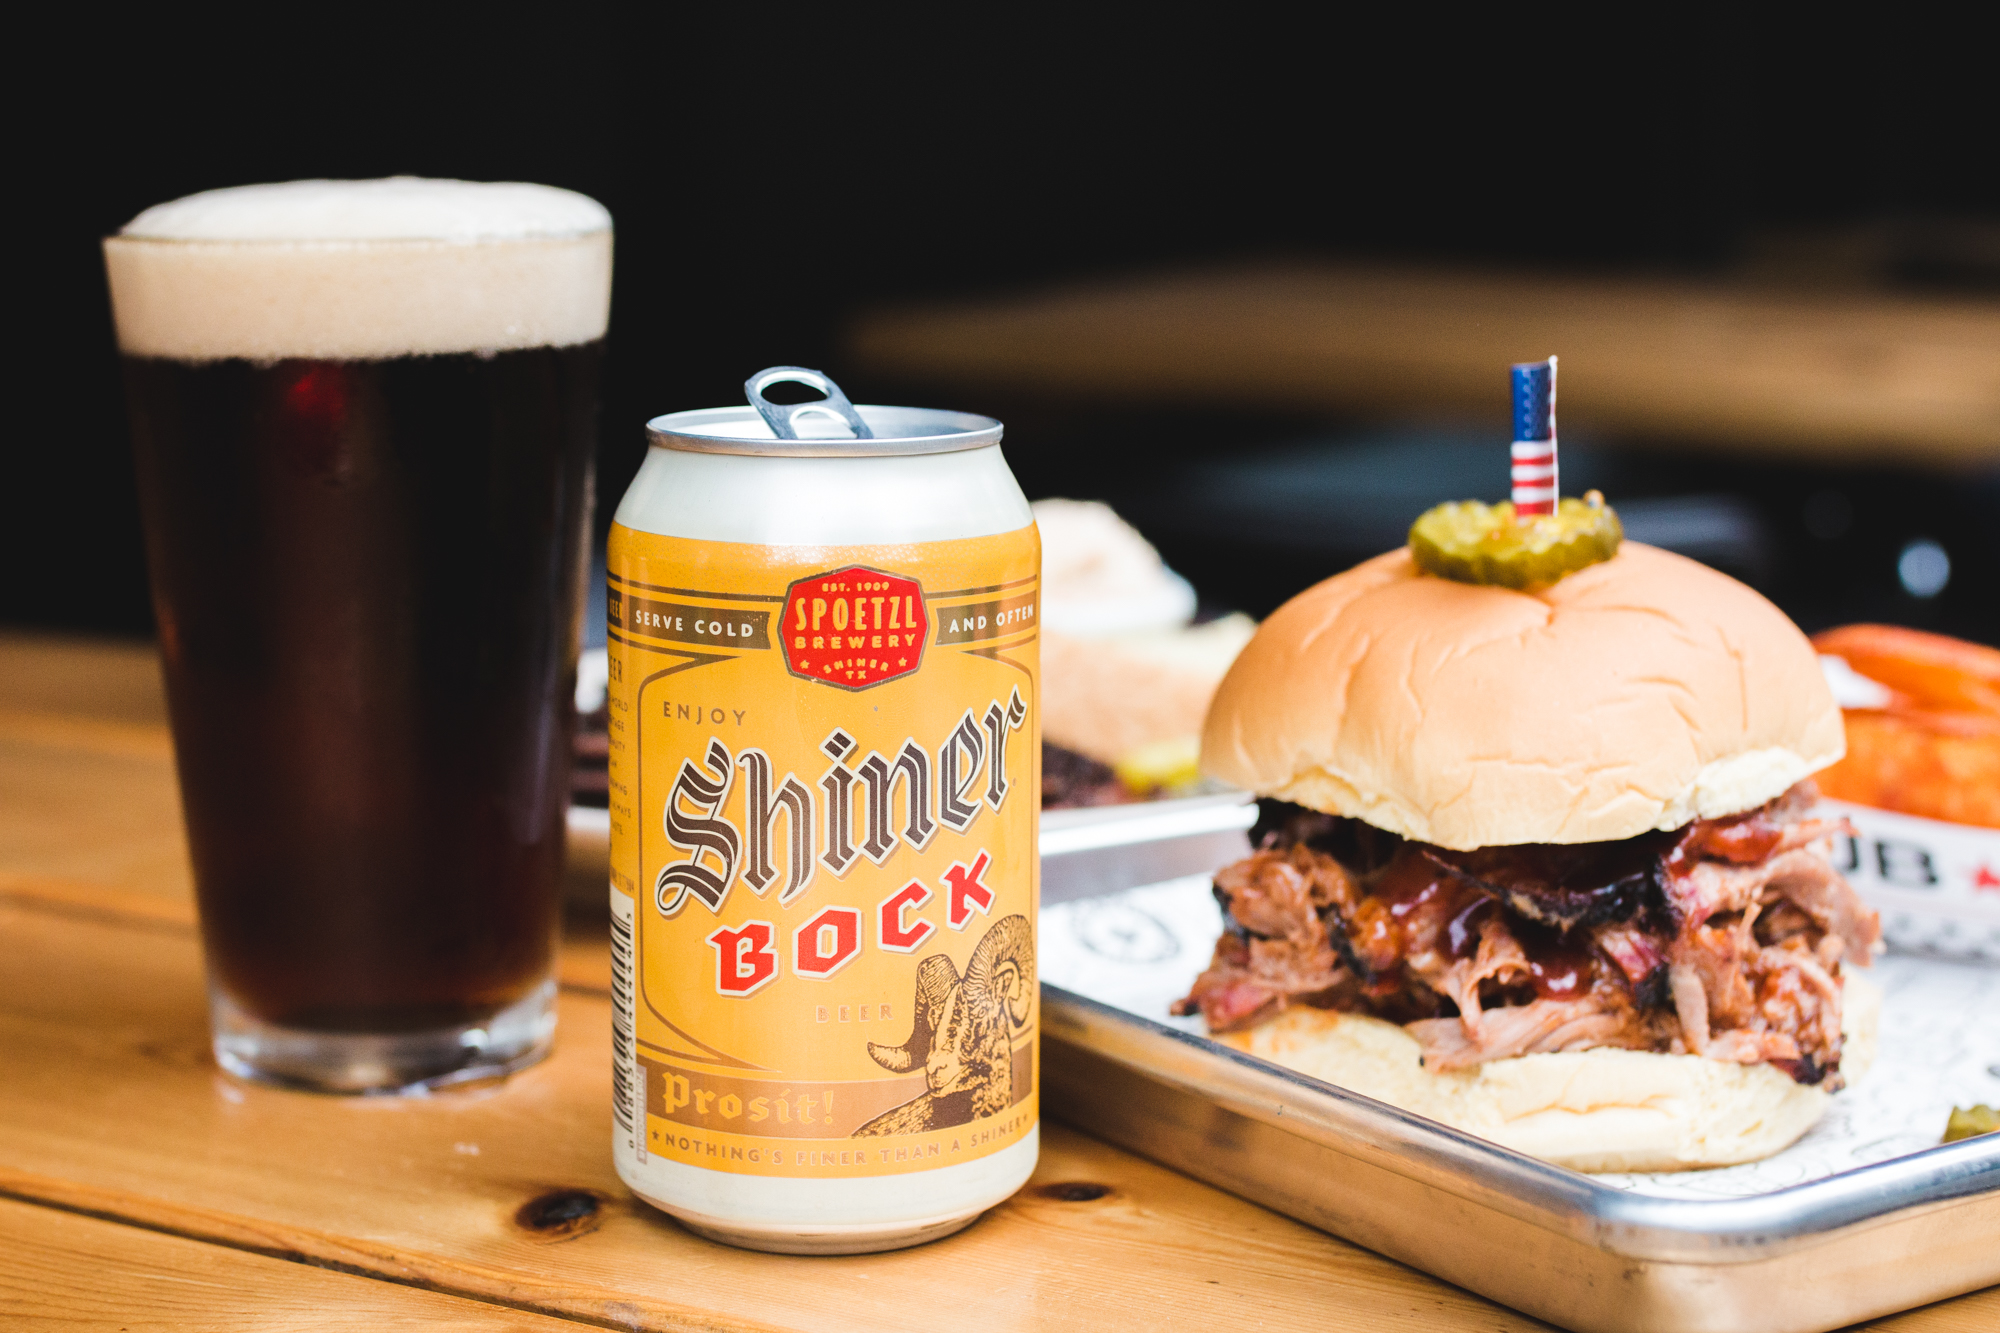 Shiner Bock and Bub City pulled pork